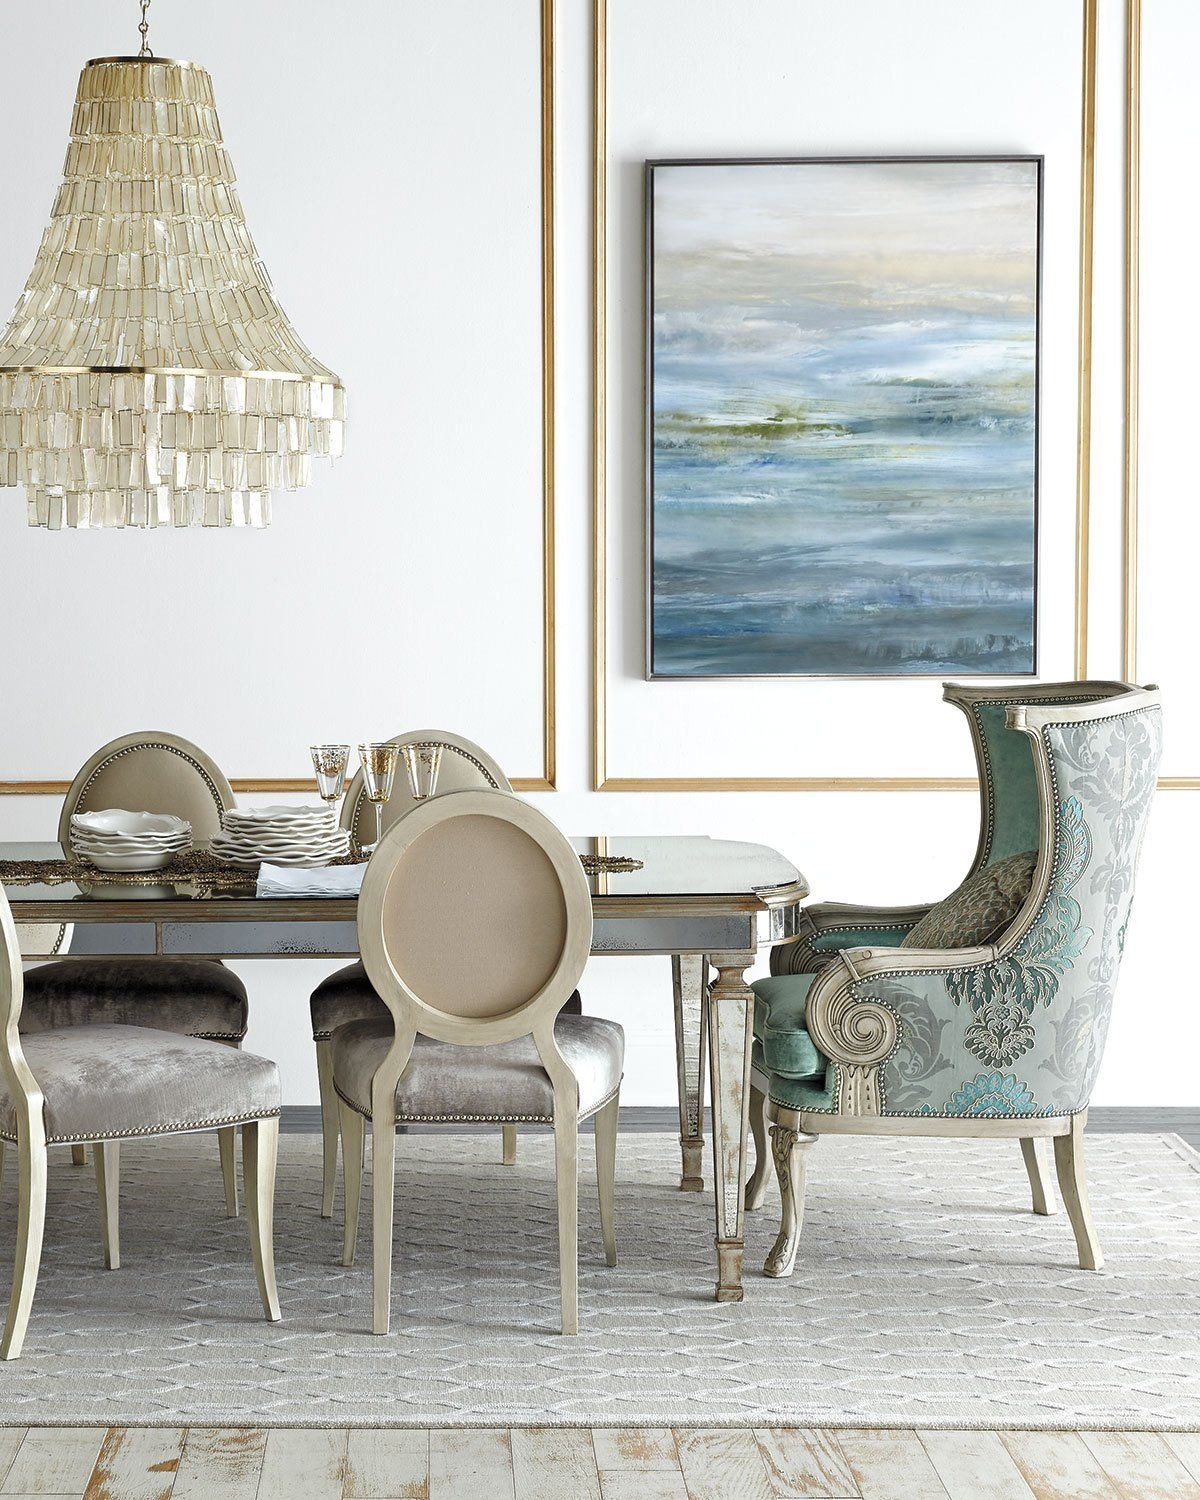 Lisandra Antqiued-Mirrored Round Dining Table | Round dining table